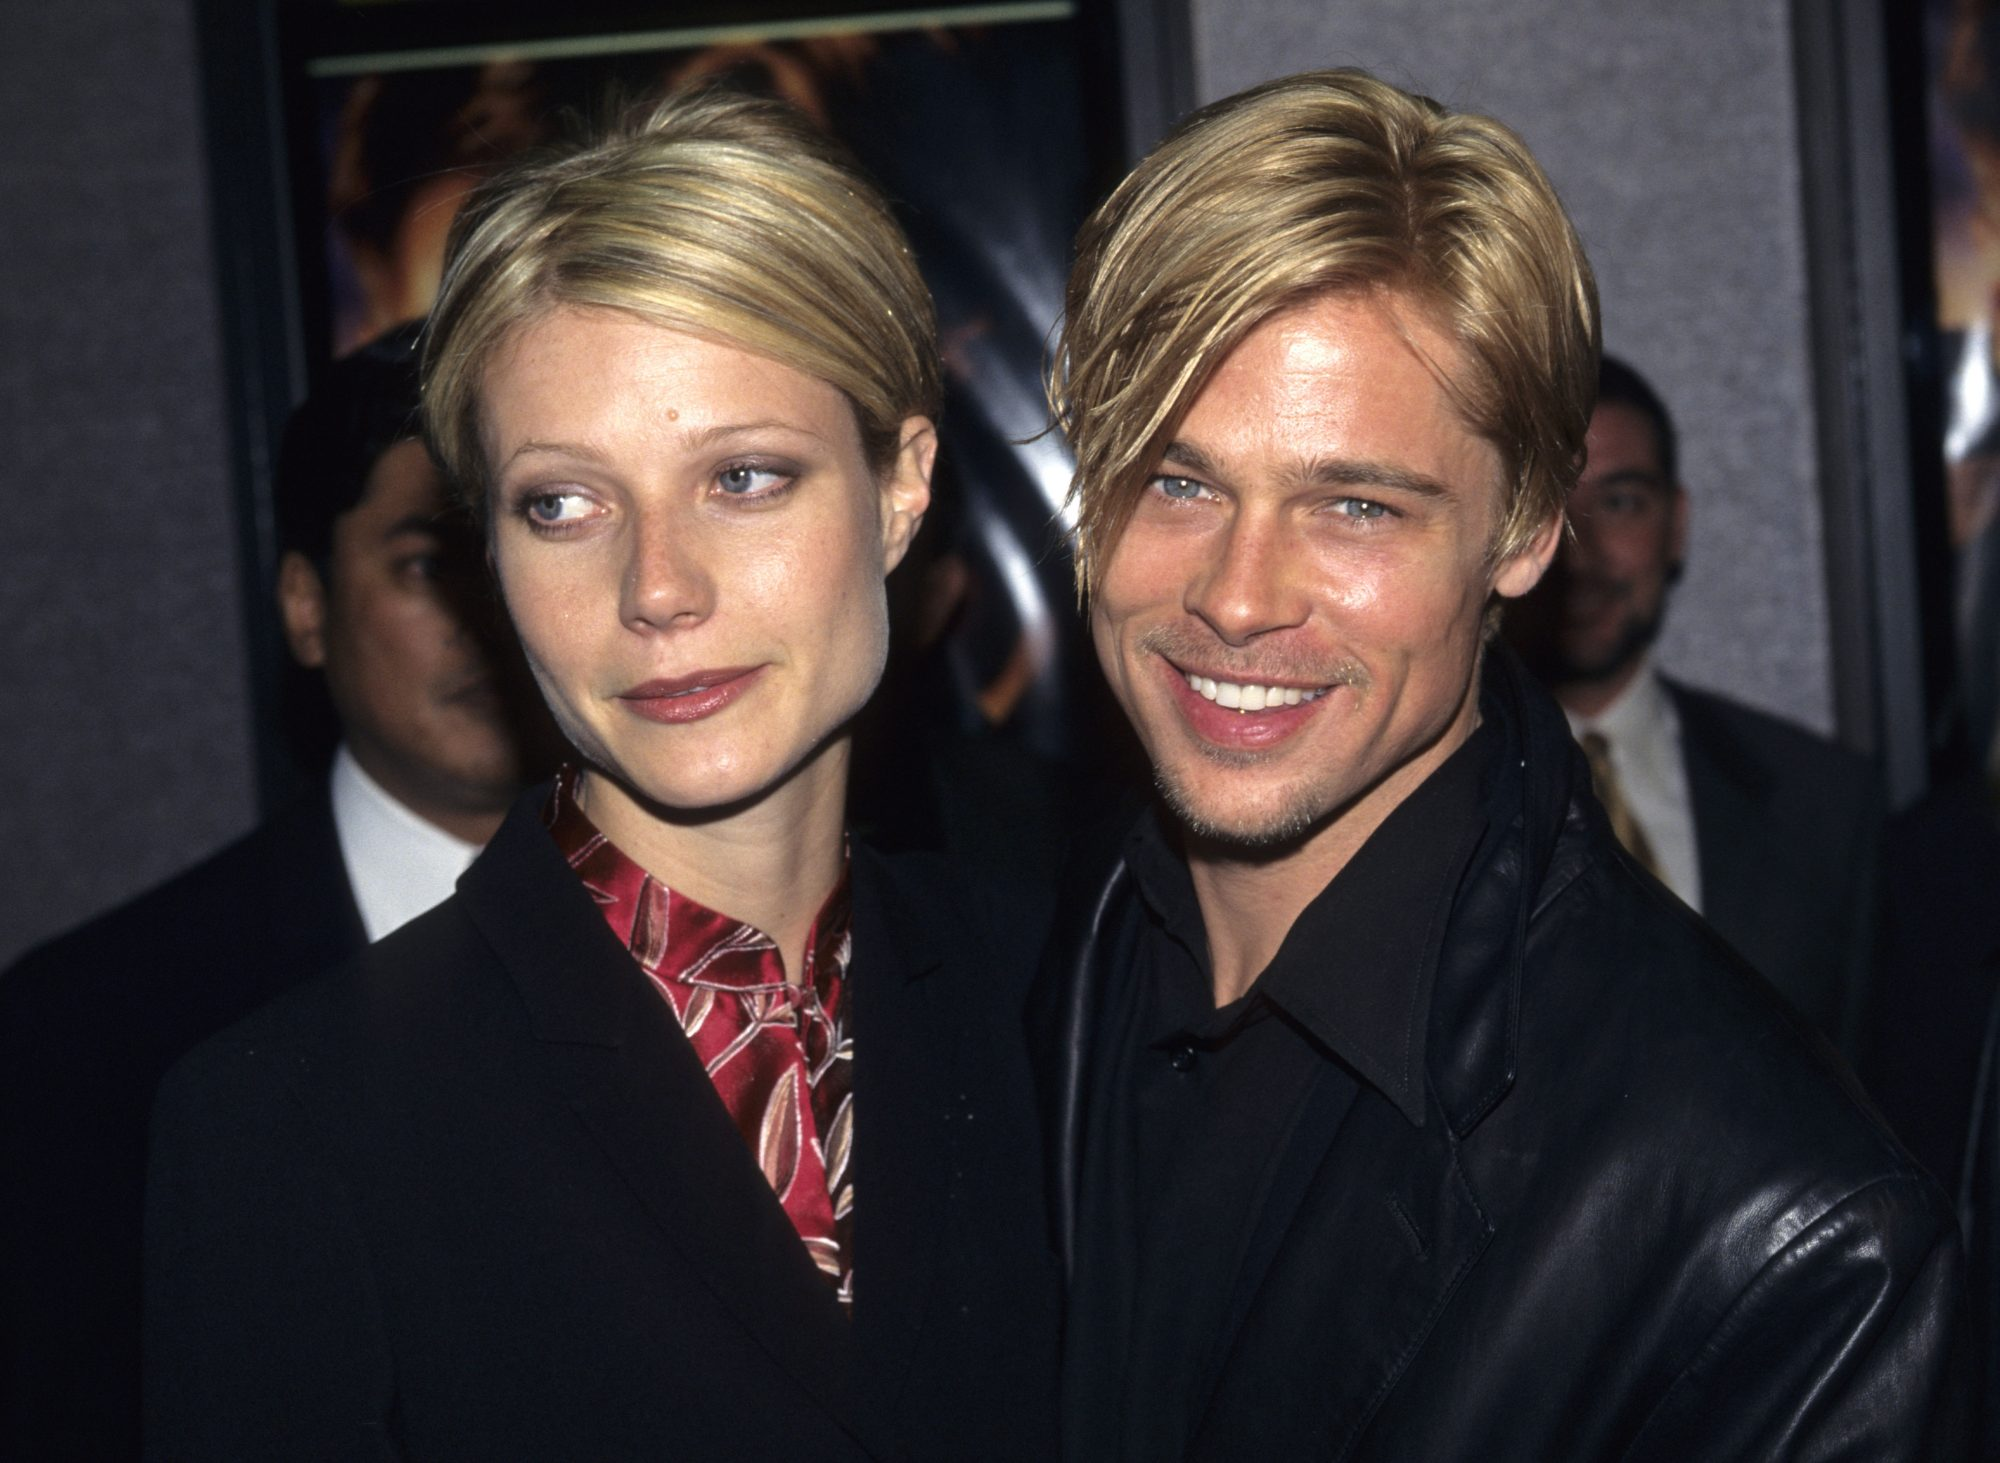 Gwyneth Paltrow Brad Pitt 'The Devil's Own' Premiere